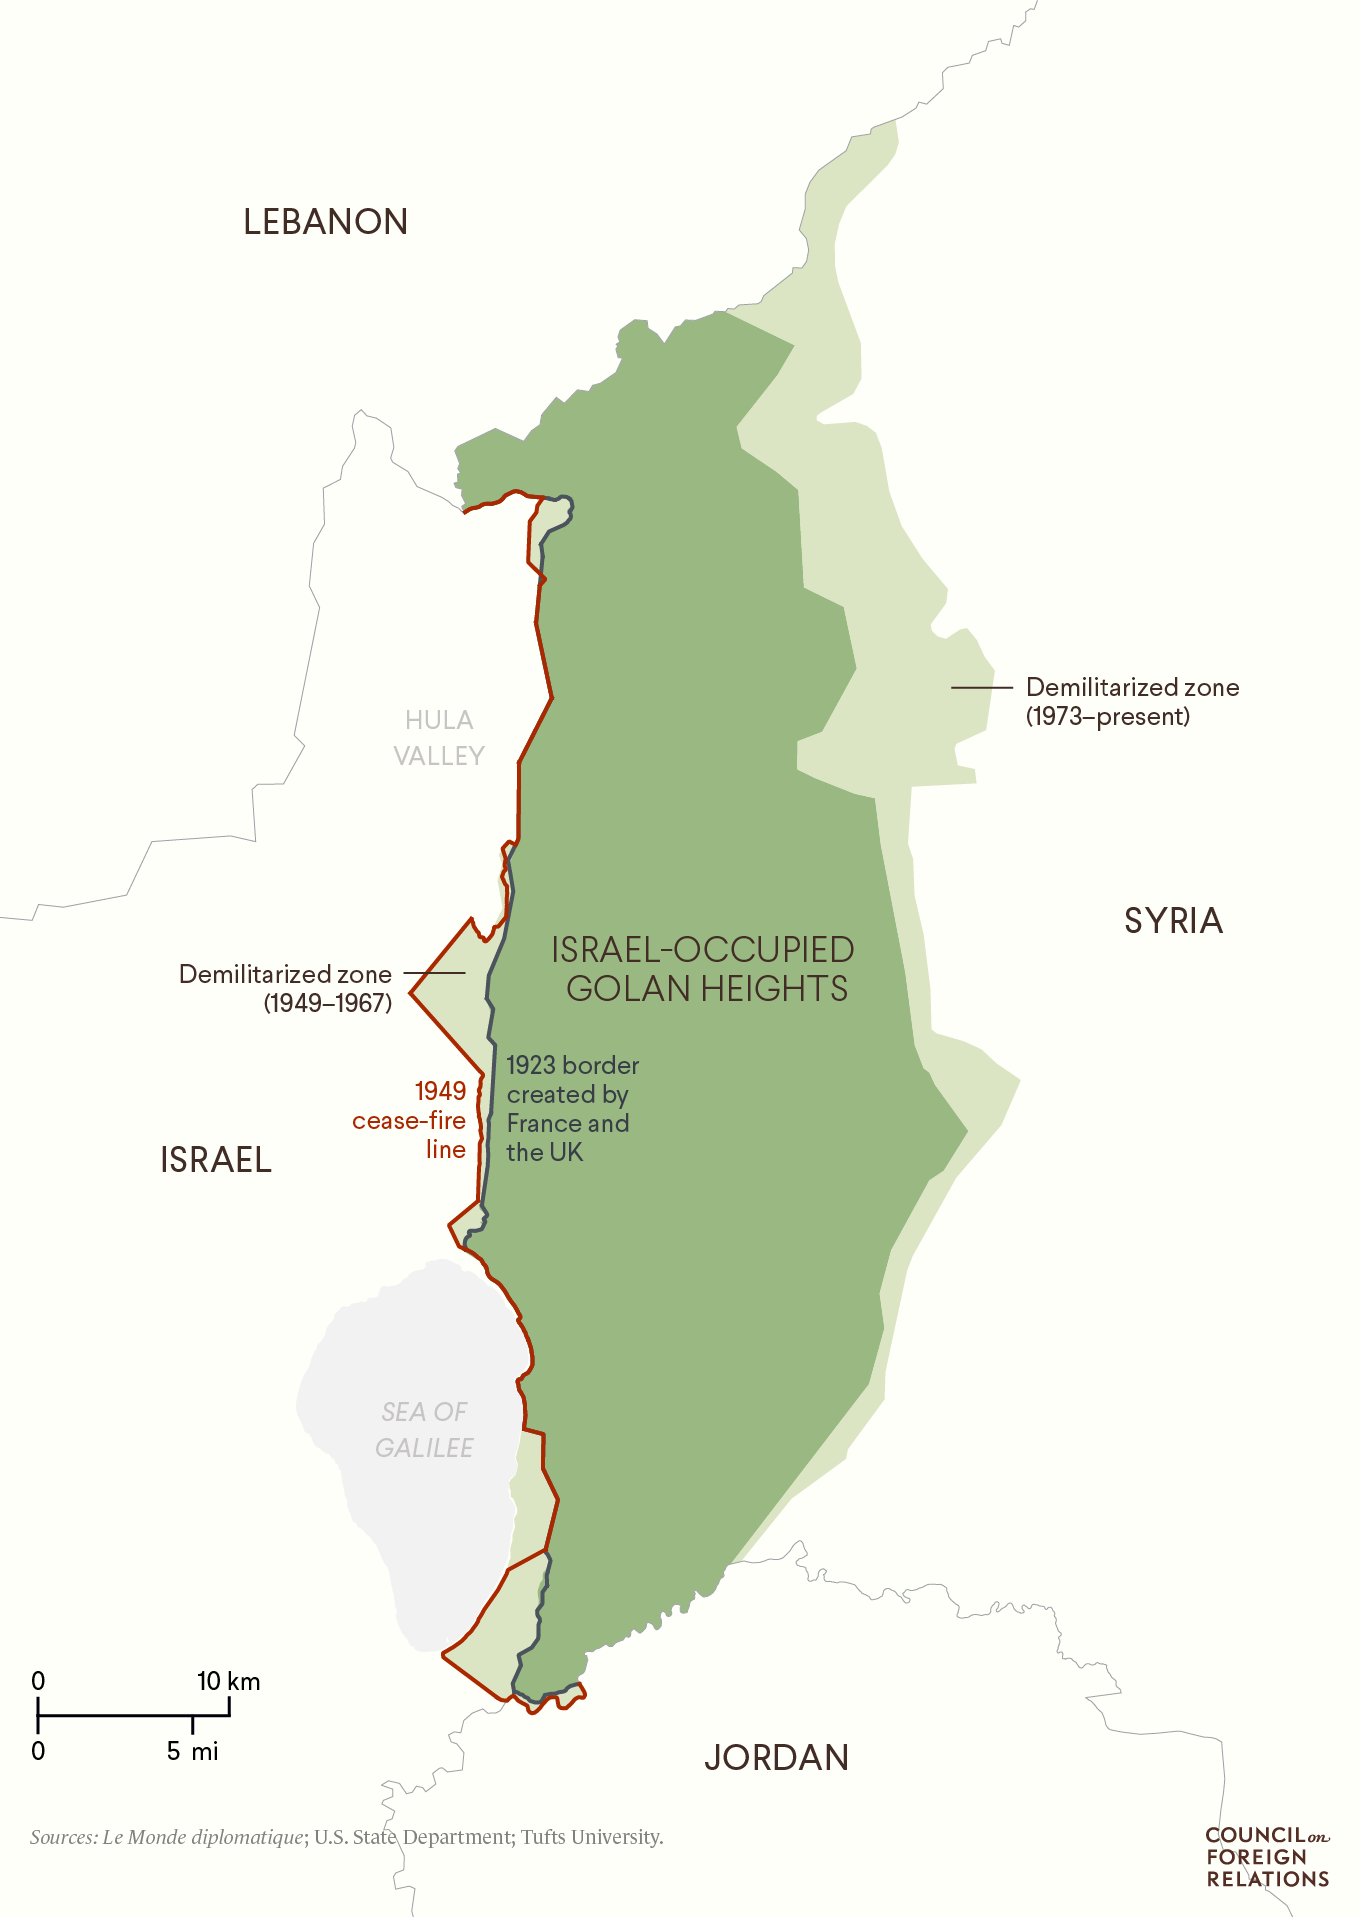 Israel-Occupied Golan Heights